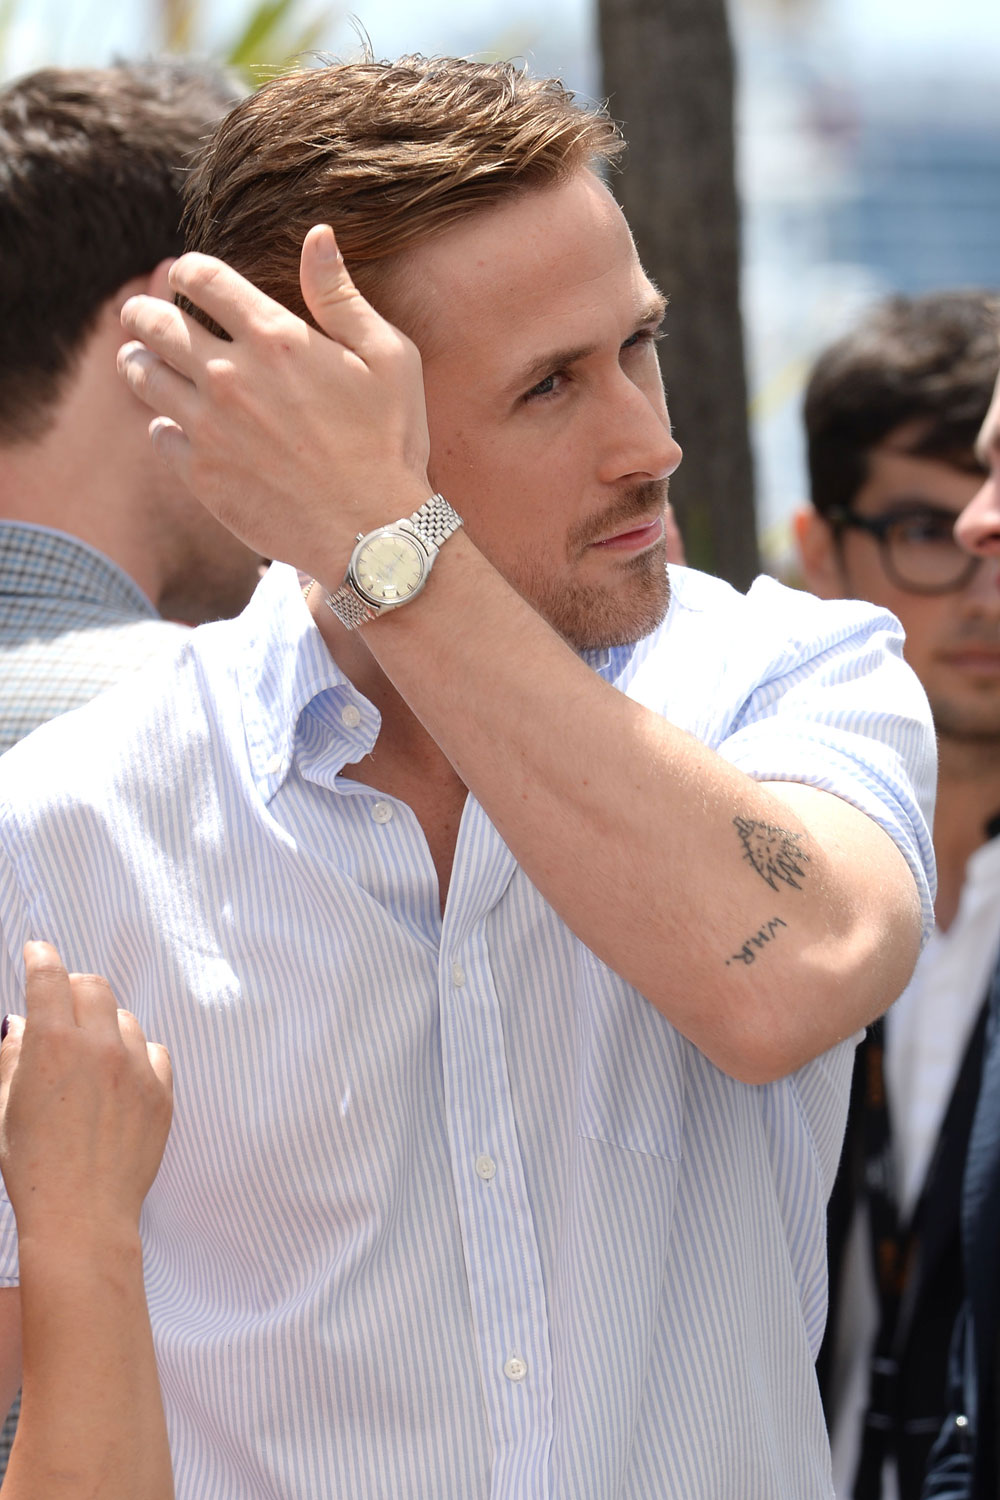 Ryan Gosling Looks Dreamy At The Photo Call For His New